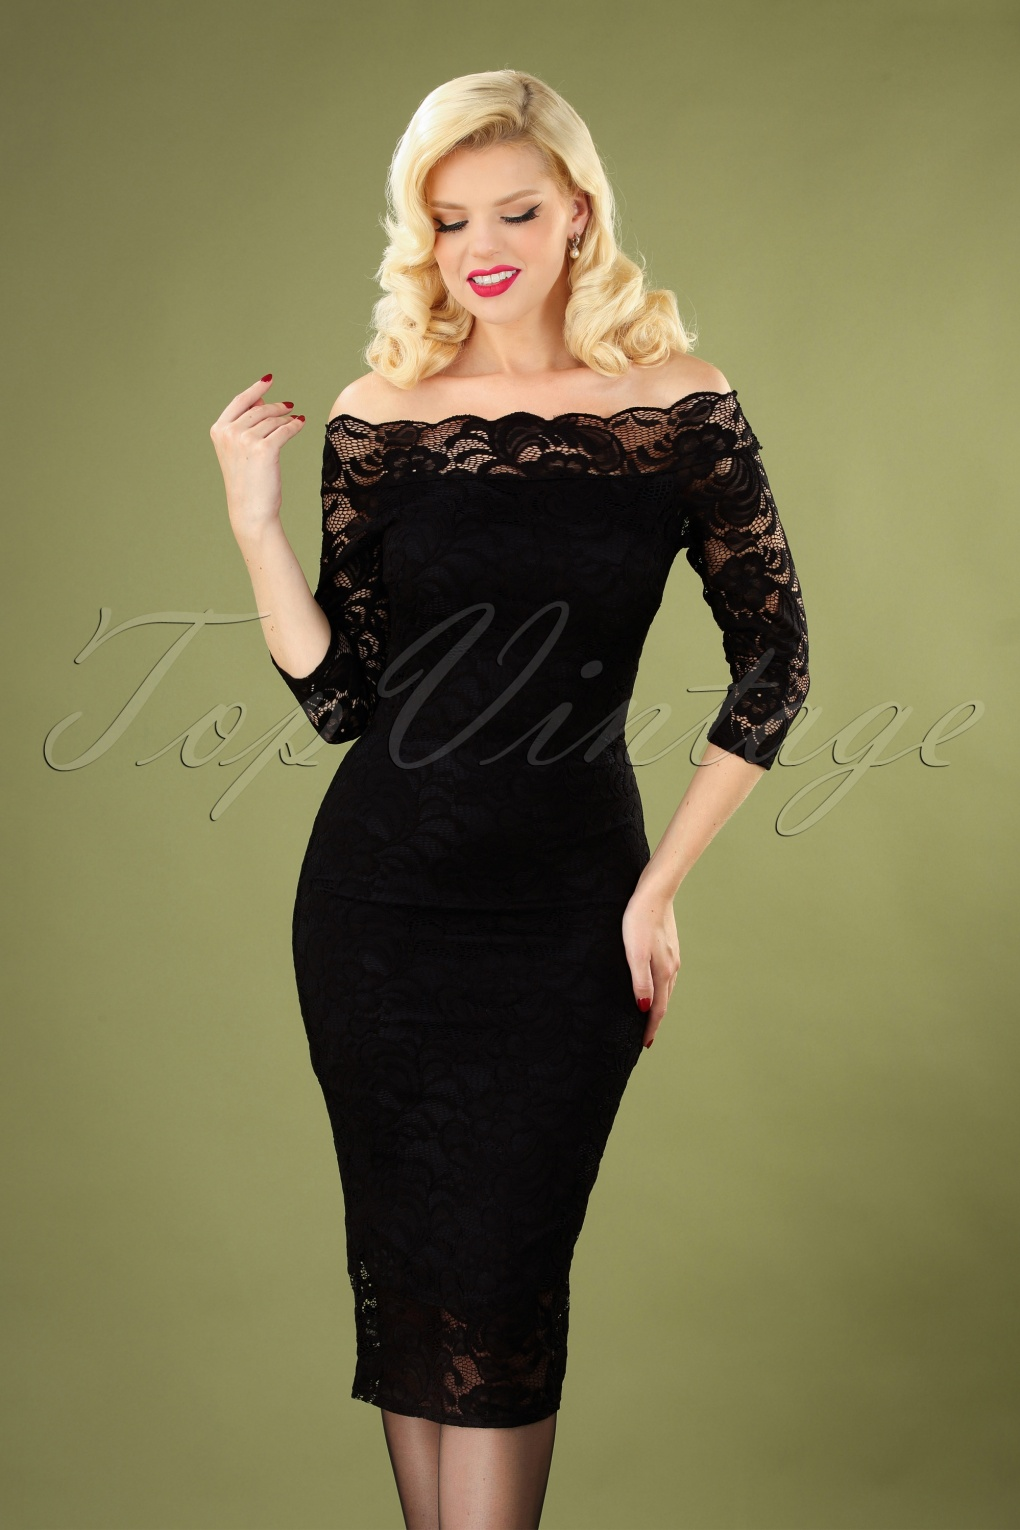 Rockabilly Dresses | Rockabilly Clothing | Viva Las Vegas 50s Vera Lace Pencil Dress in Black £48.35 AT vintagedancer.com